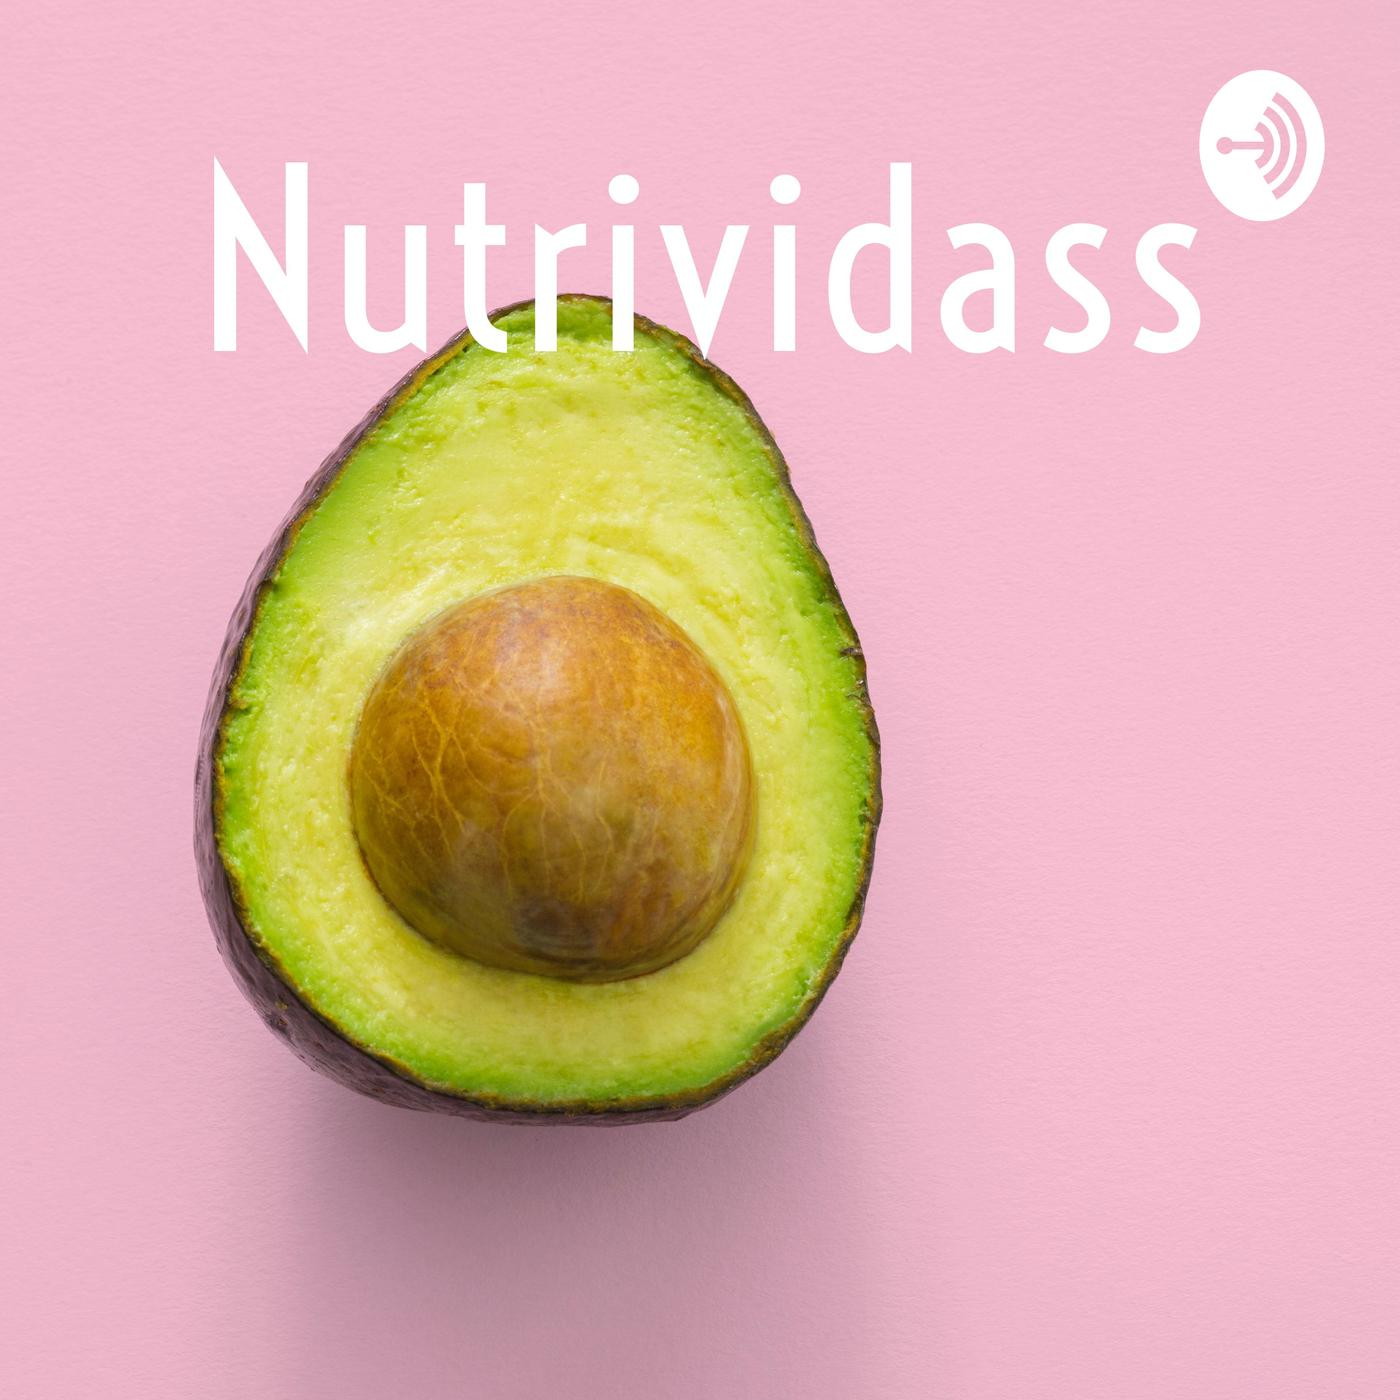 Nutrividass (podcast) - Camila Morais | Listen Notes